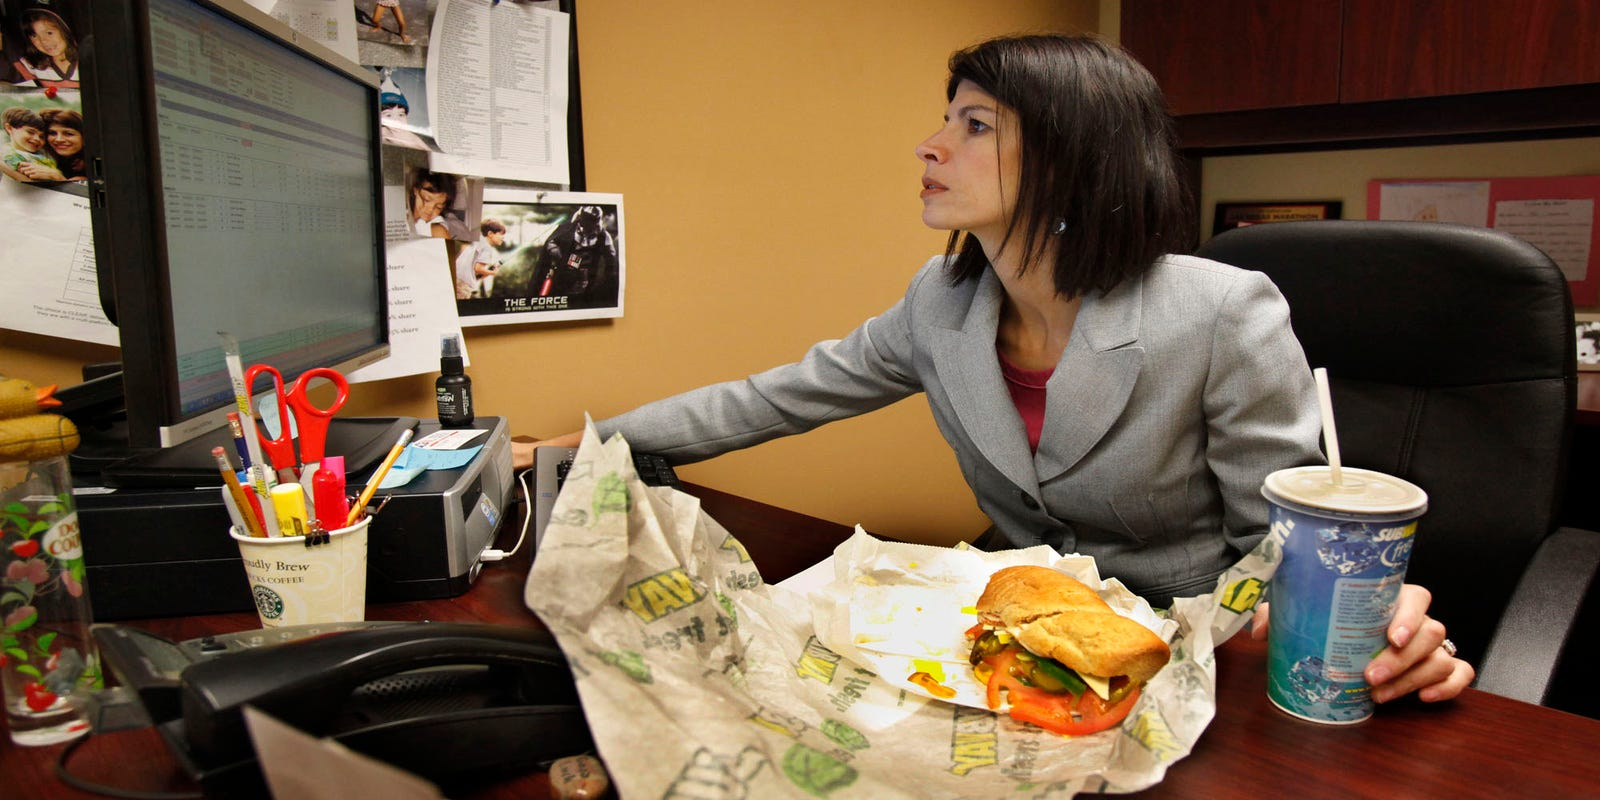 Eating at your desk your cubemates may be seething